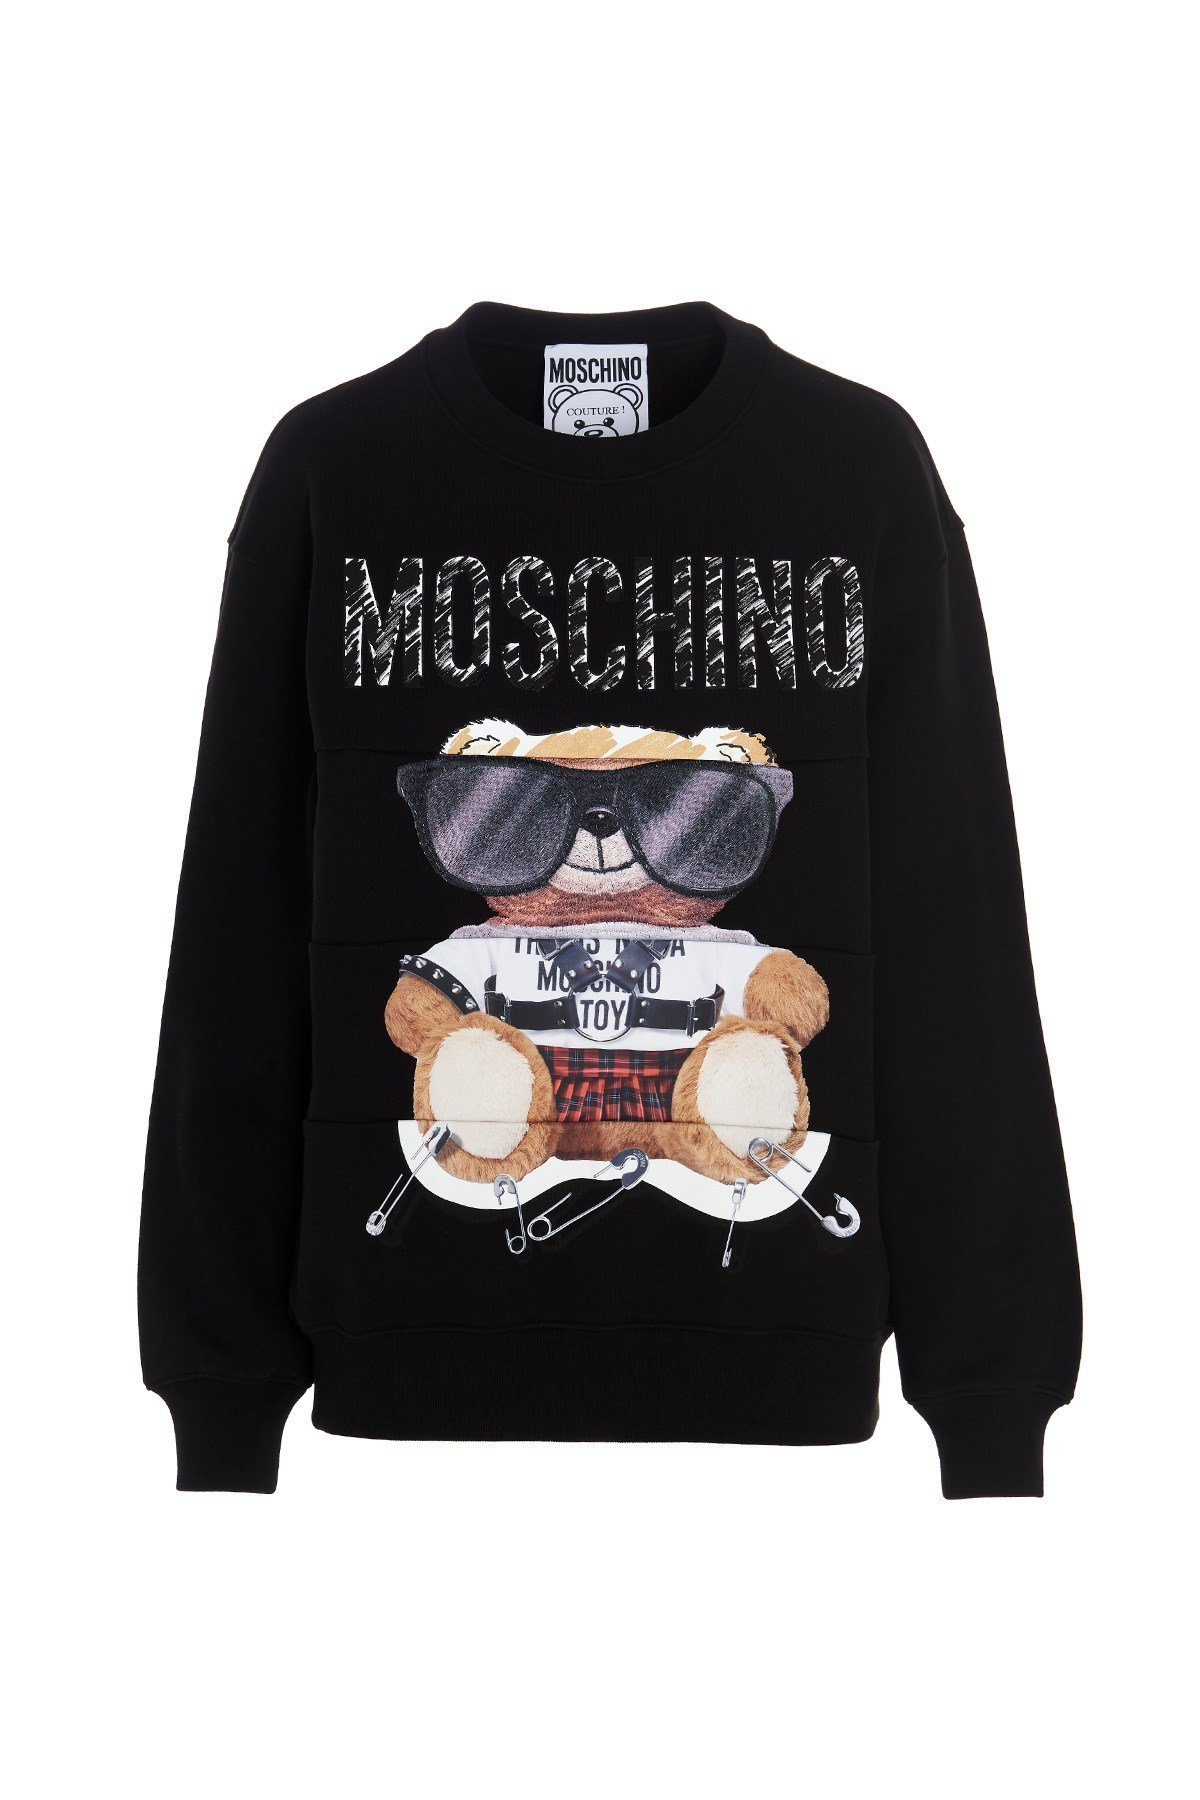 Moschino◎Teddy spectacles スウェットシャツ V171355273555 (Moschino/スウェット・トレーナー) 70533486